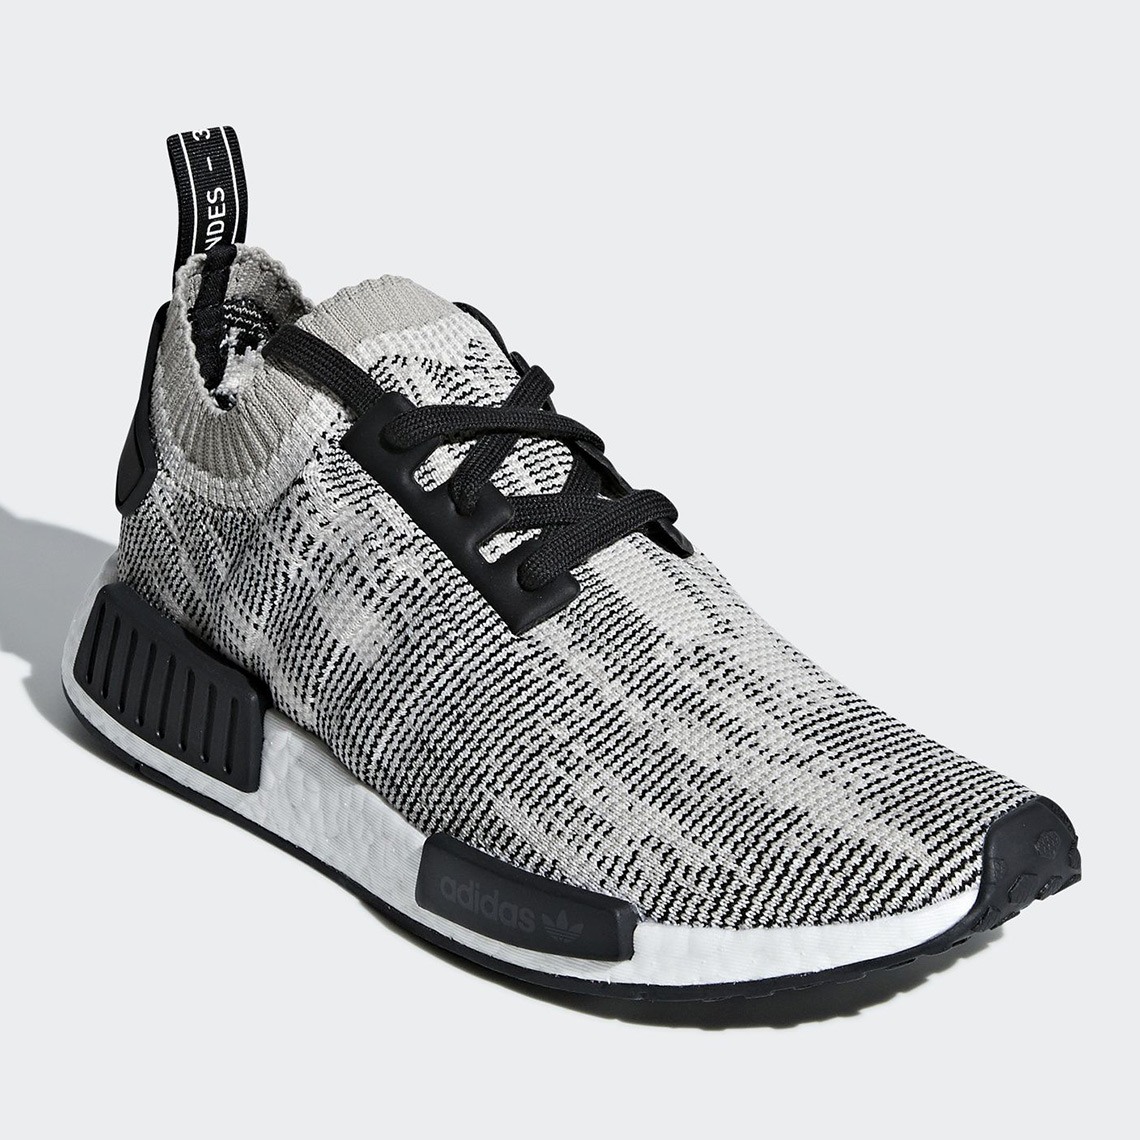 365cfc291 adidas NMD R1 Primeknit Release Date  August 1st